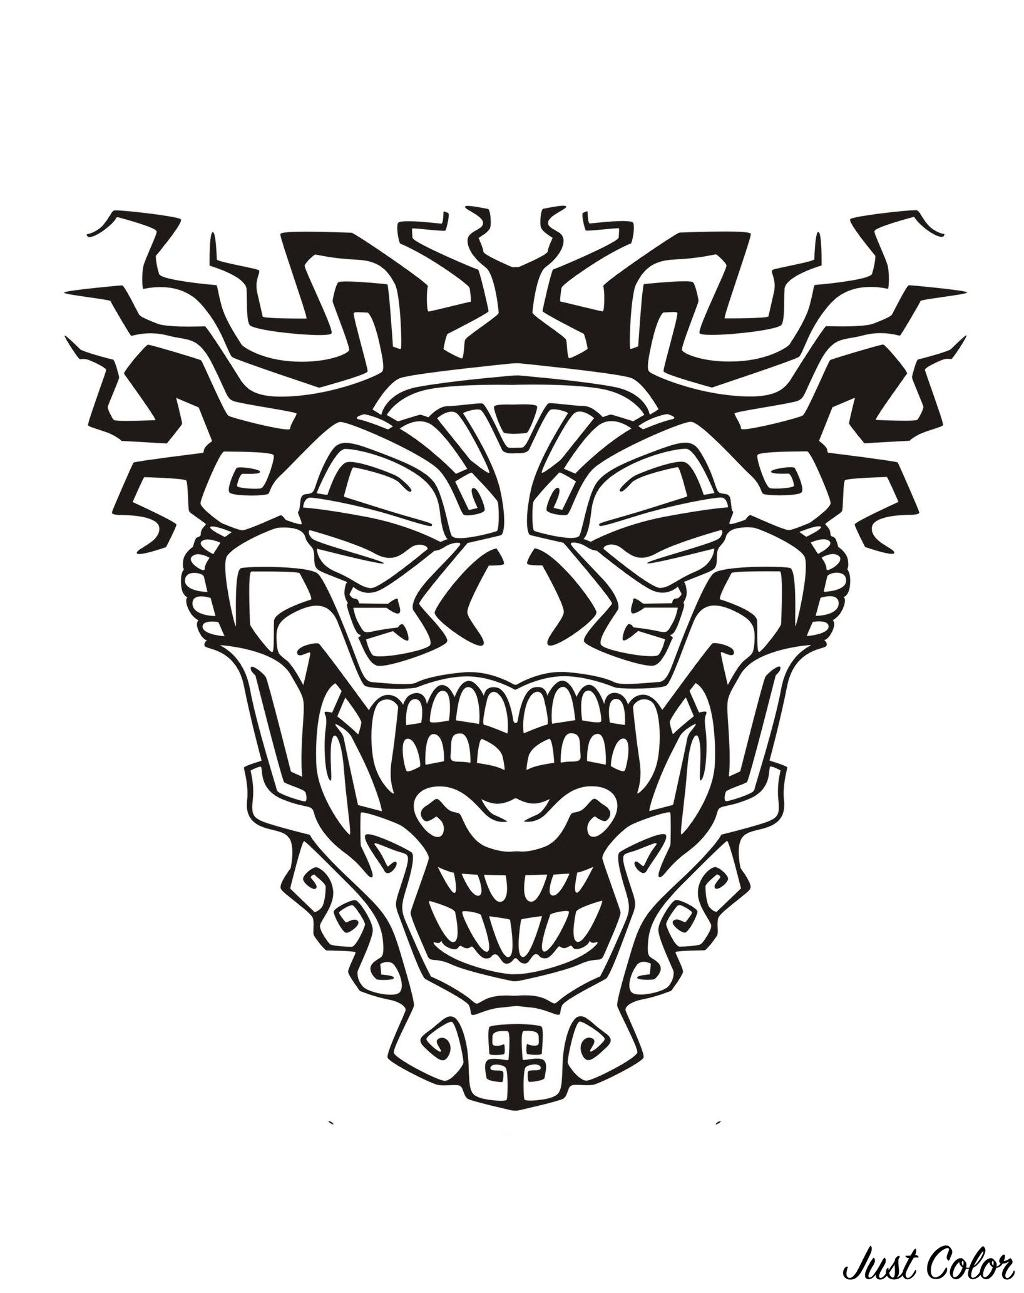 Mask inspired by Aztecs, Mayans and Incas - 3